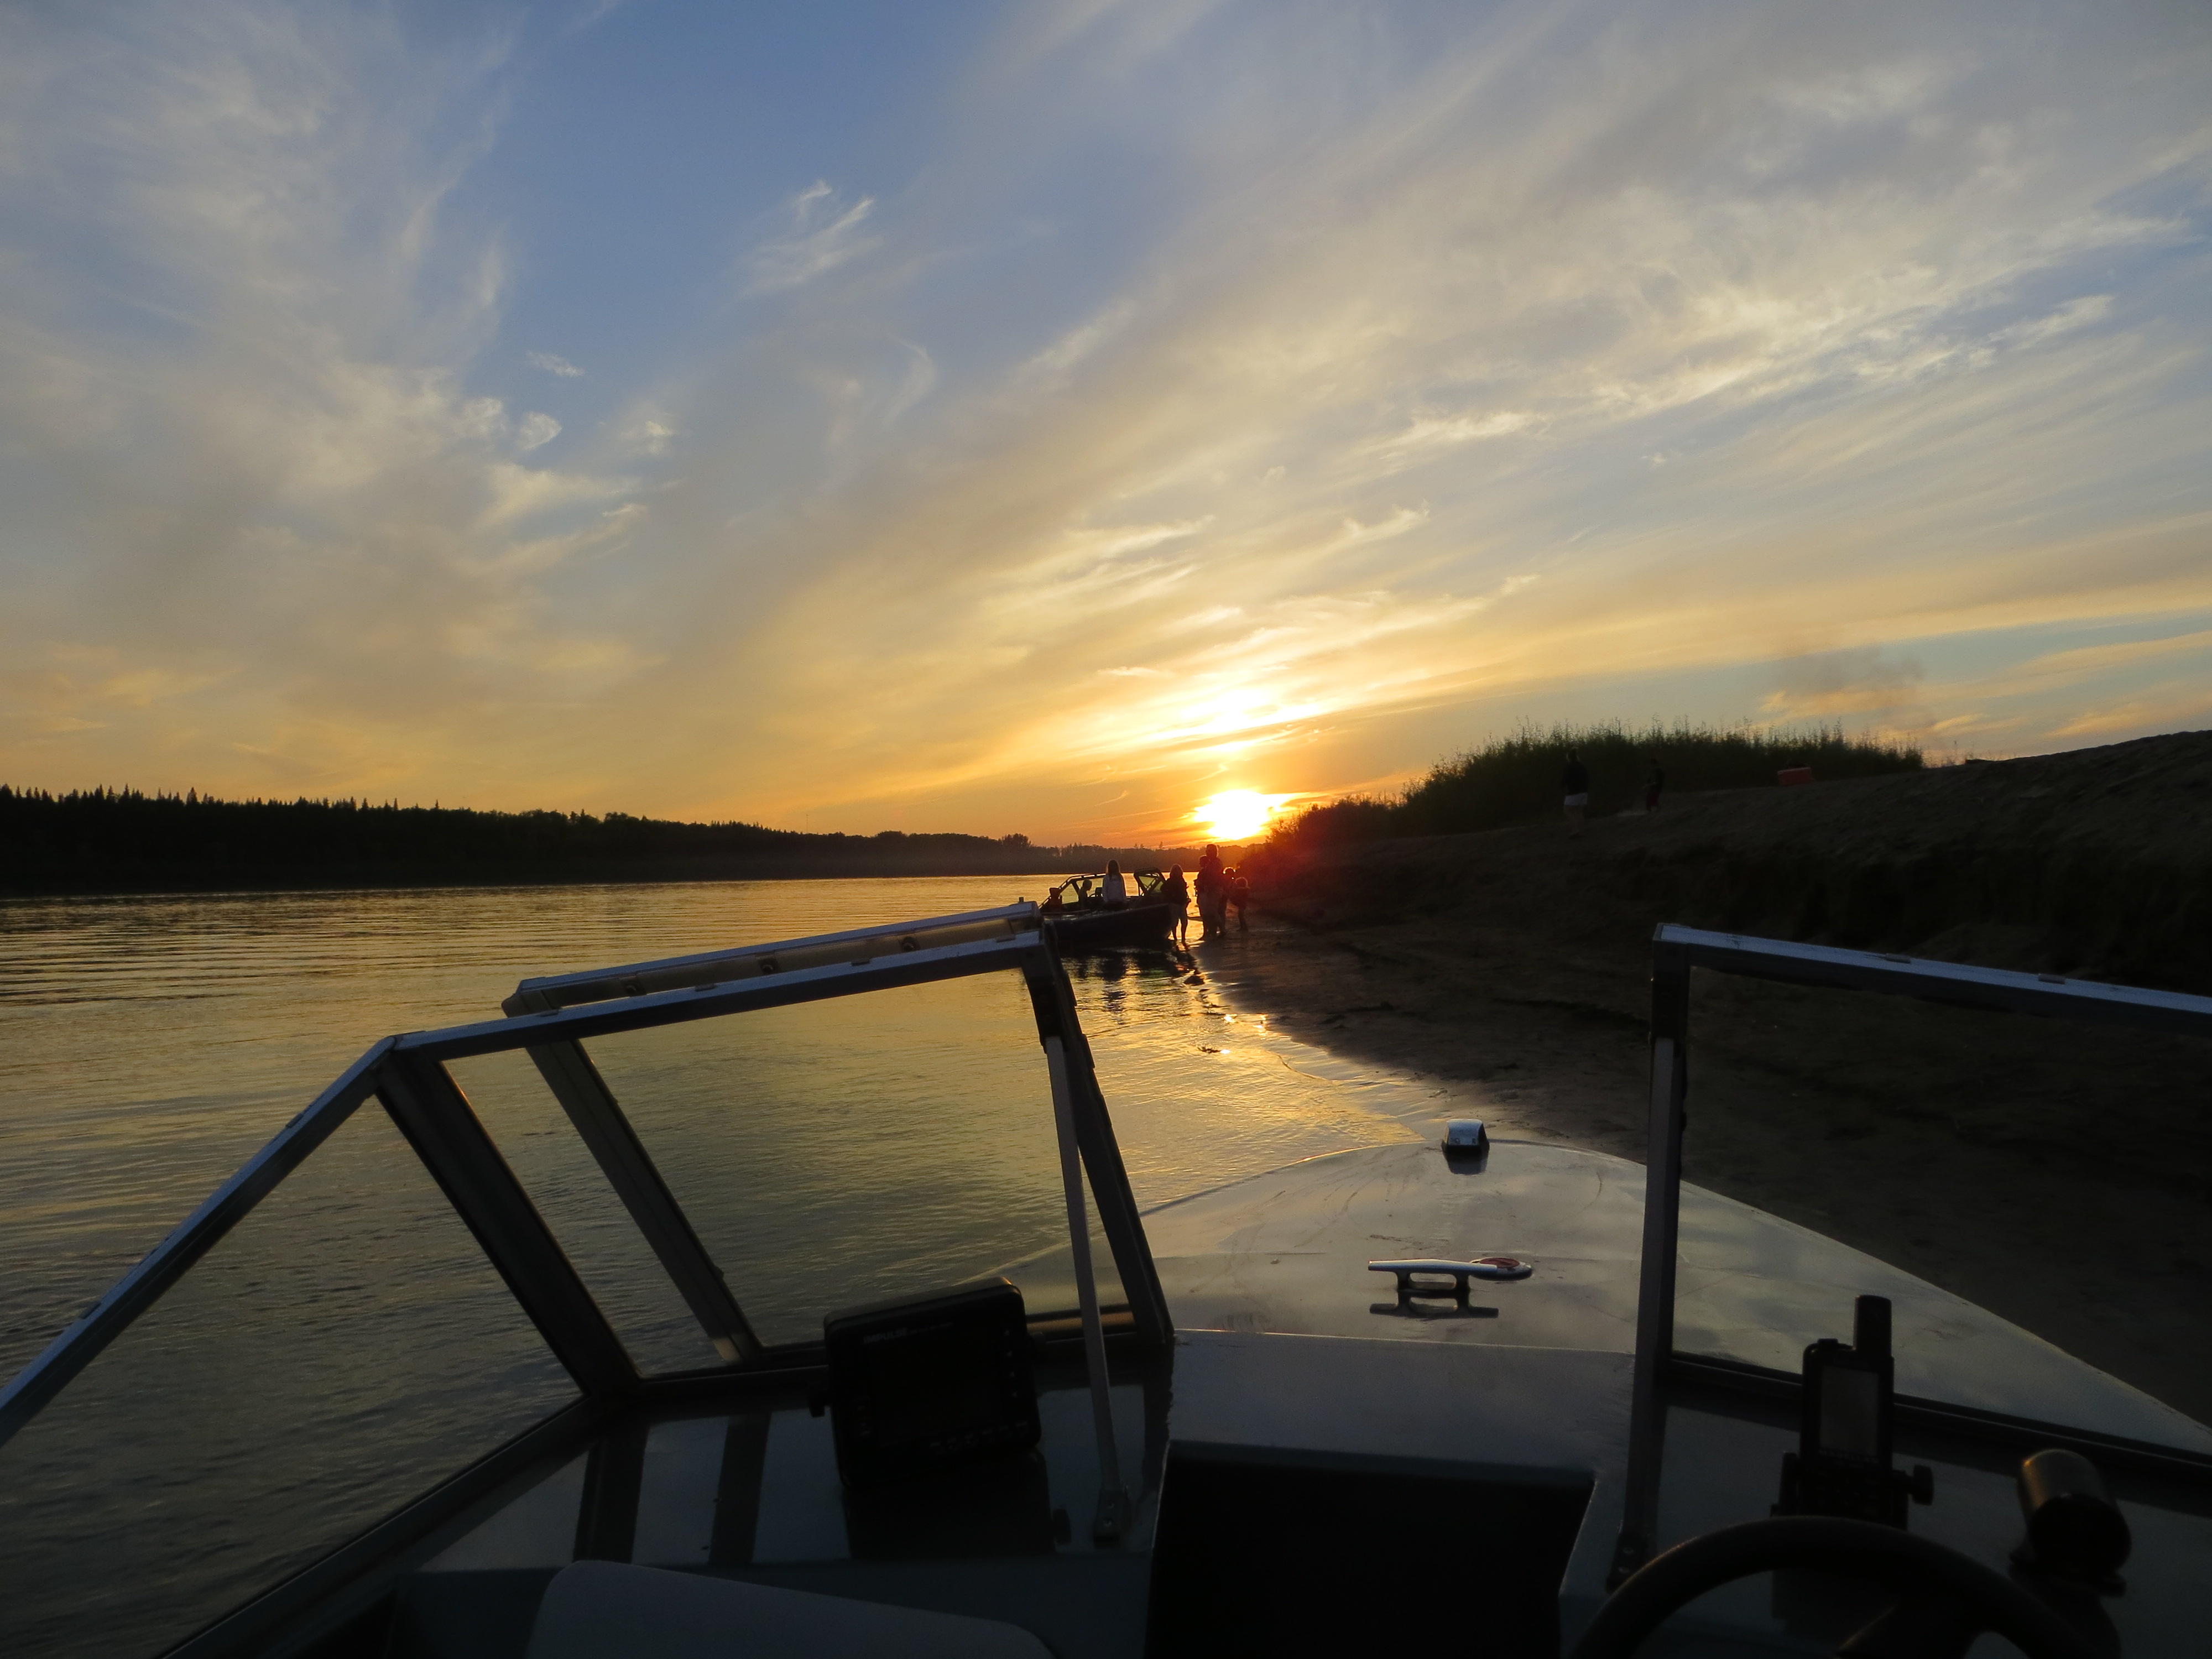 Sunset on the Peace River. Photo Credit Marilee Cranna Toews